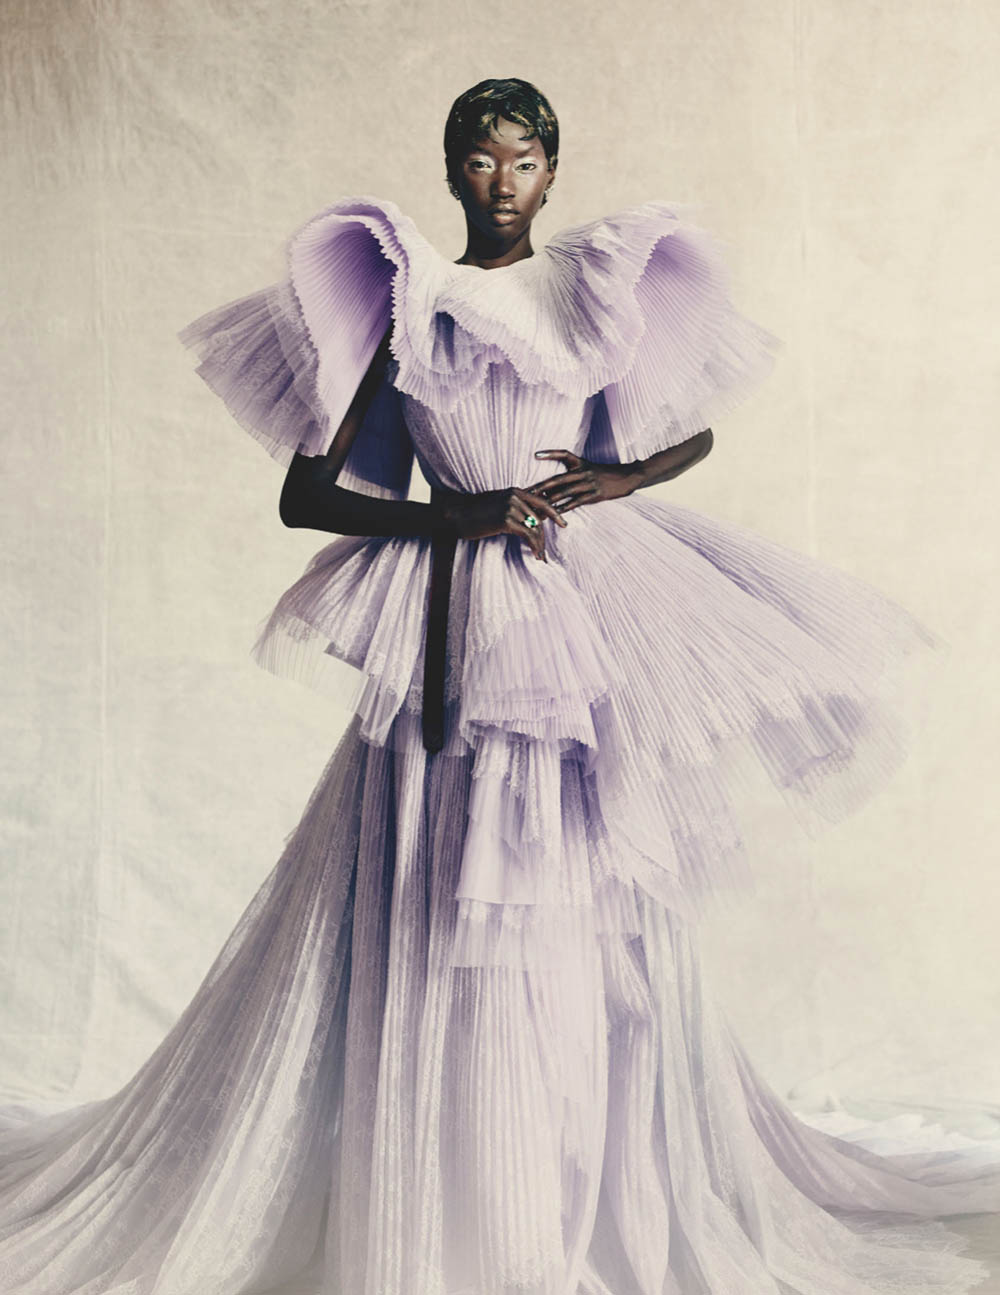 ''High Drama'' by Paolo Roversi for British Vogue April 2020